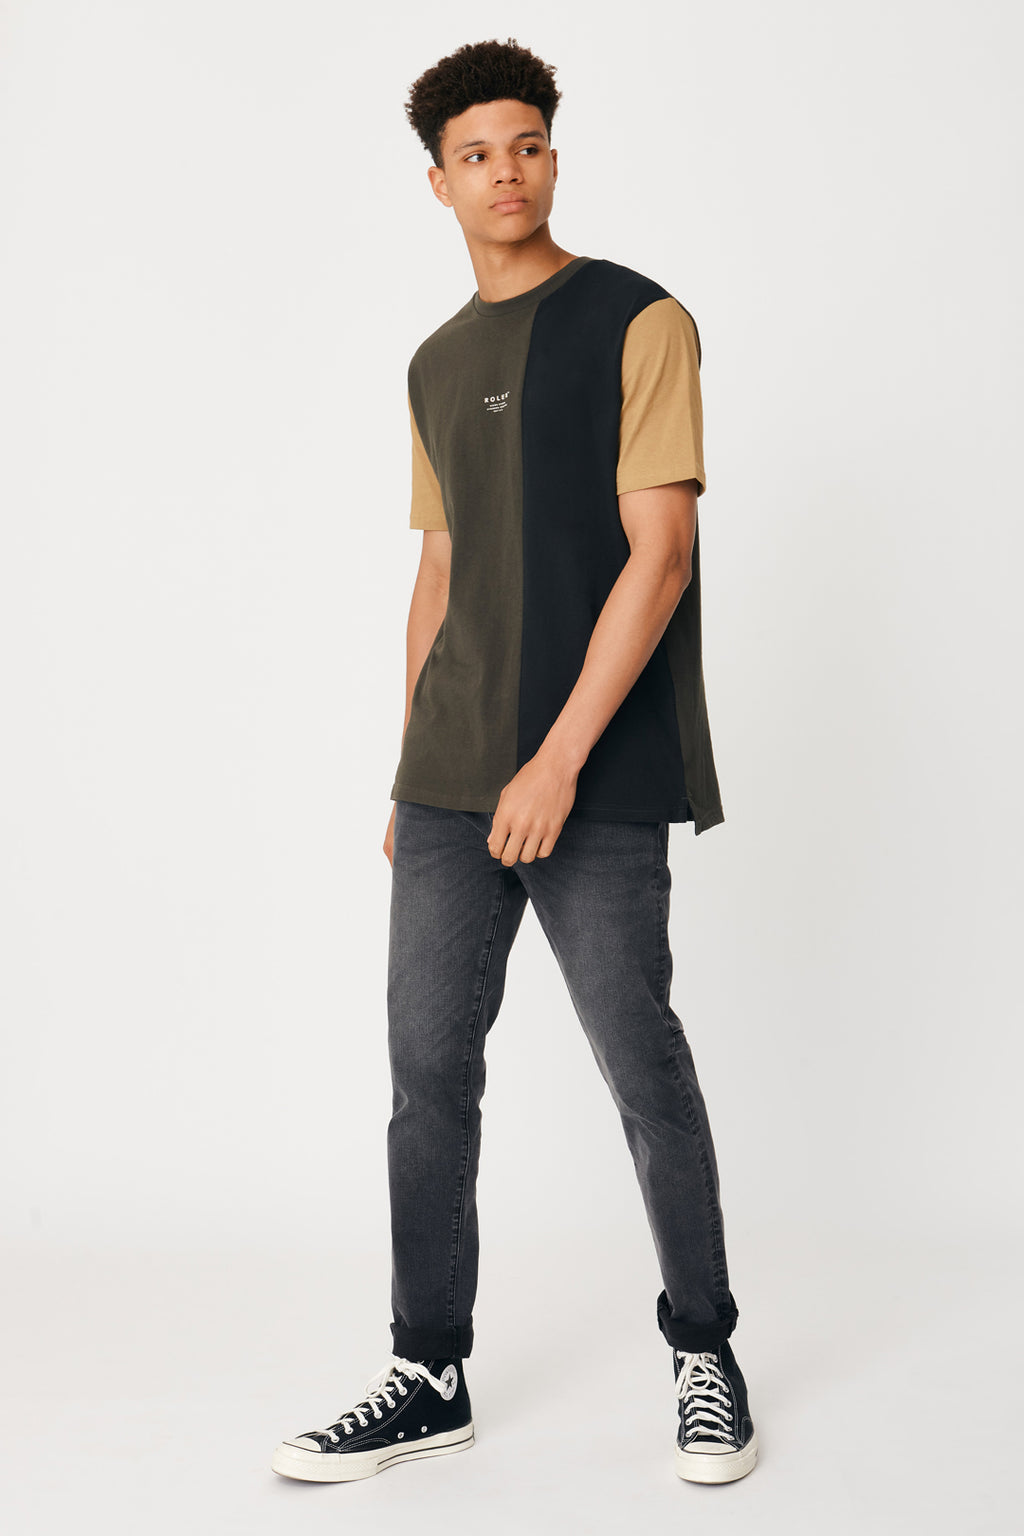 The Brannan Tee - Evergreen Black - Roler Clothing